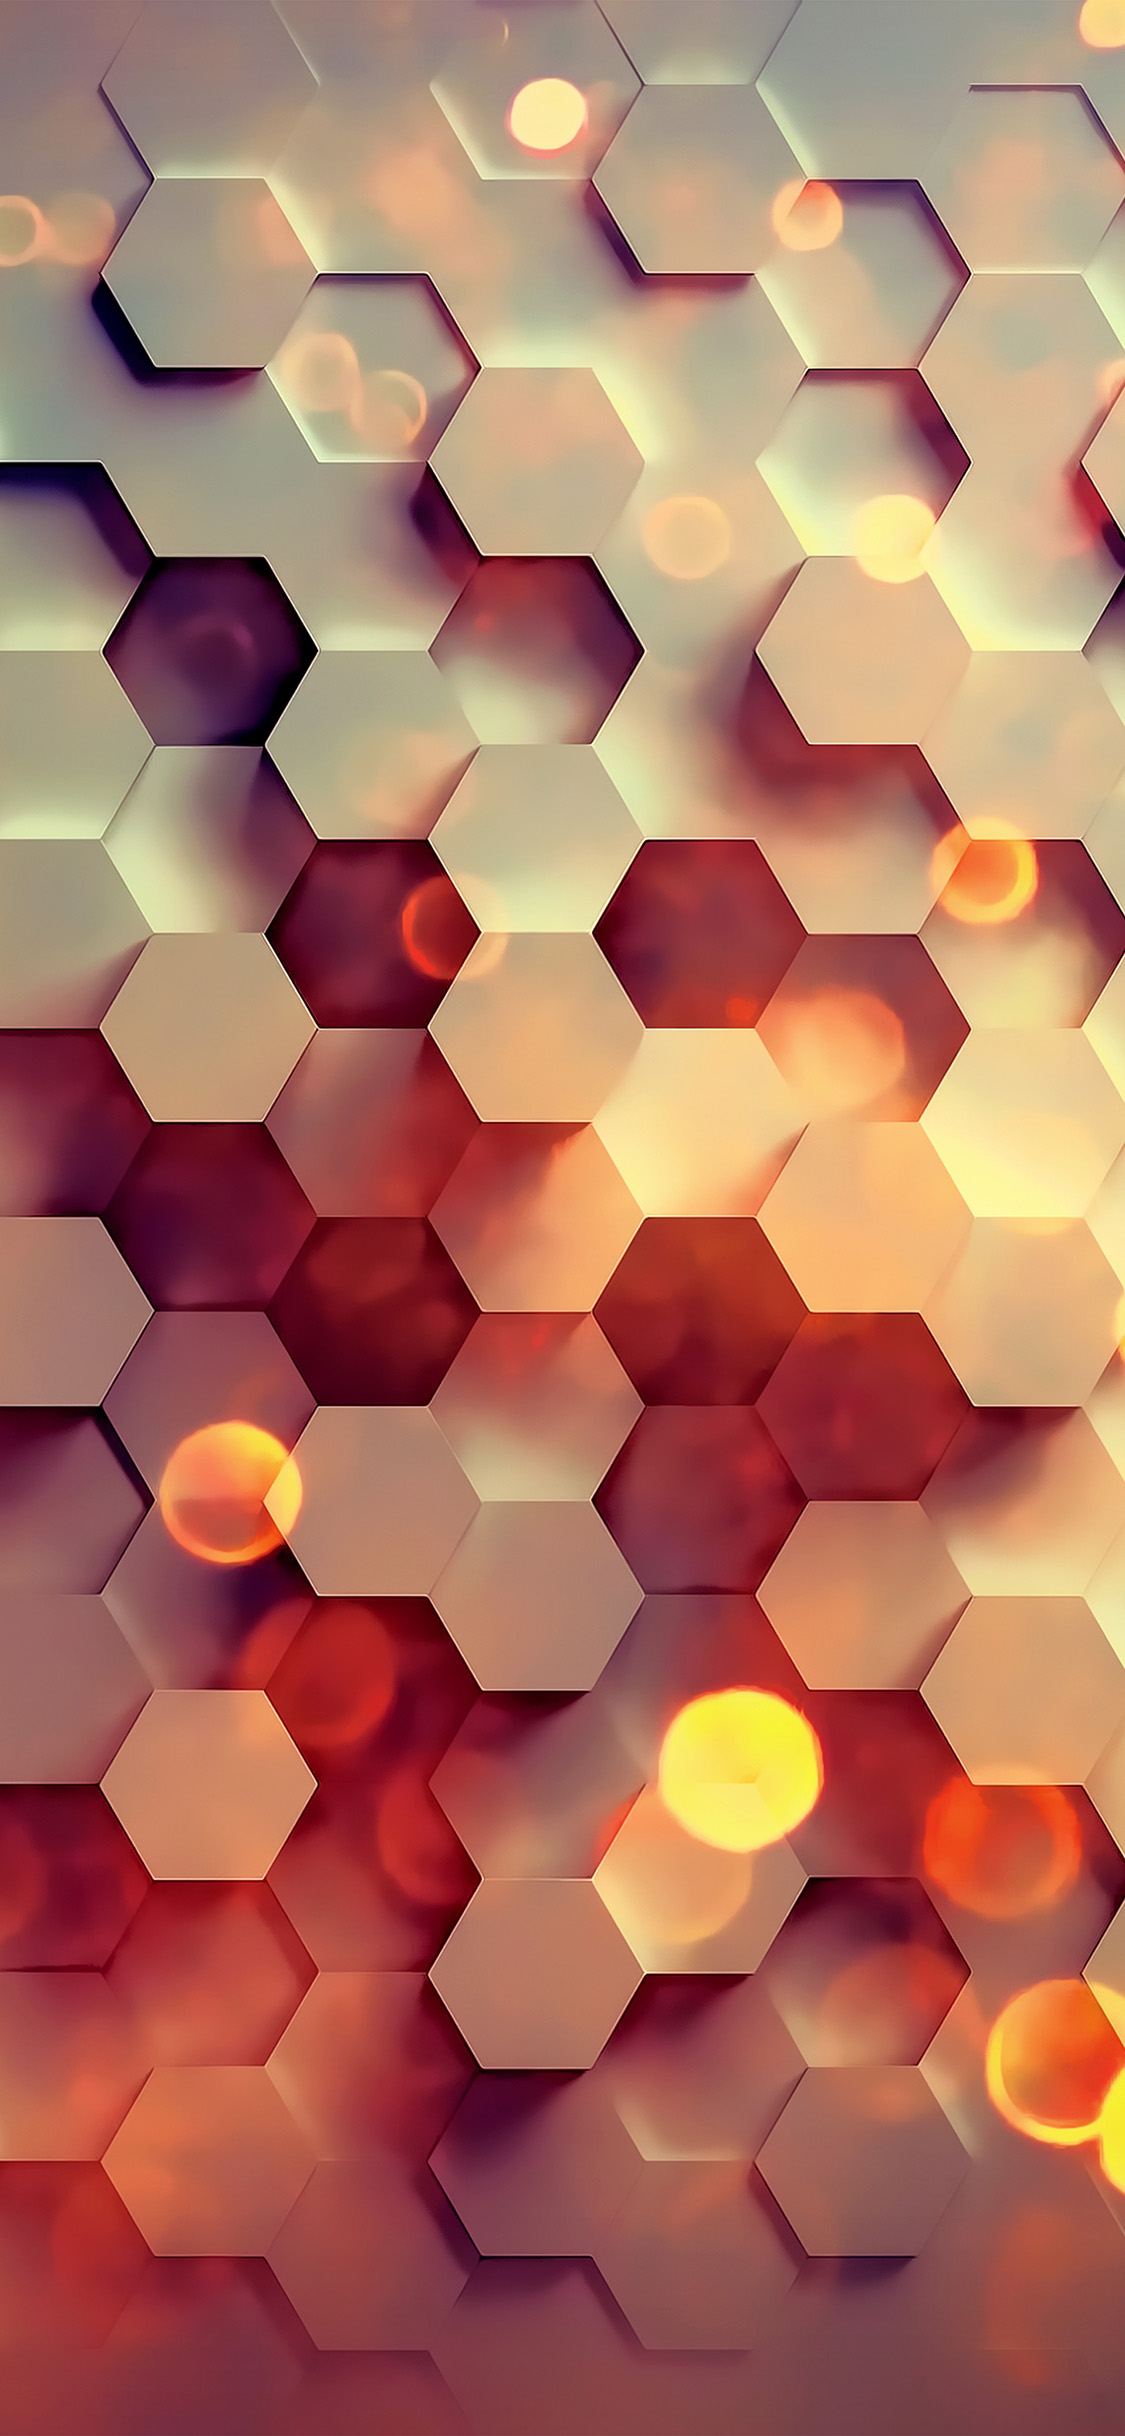 Simple Iphone X Wallpaper Vy40 Honey Hexagon Digital Abstract Pattern Background